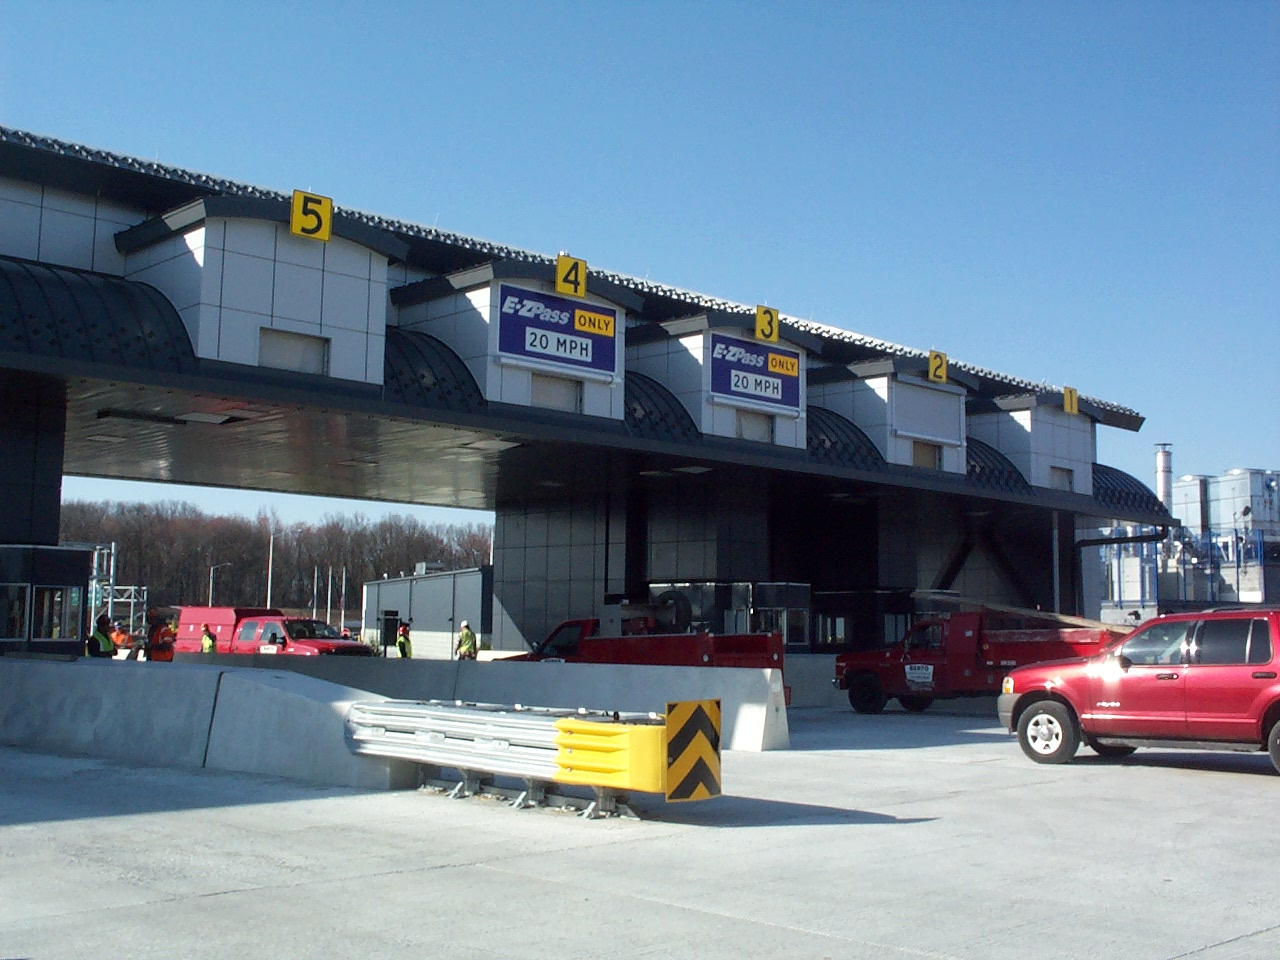 NYS Thruway Authority Toll Utility Building  Newburg, NY